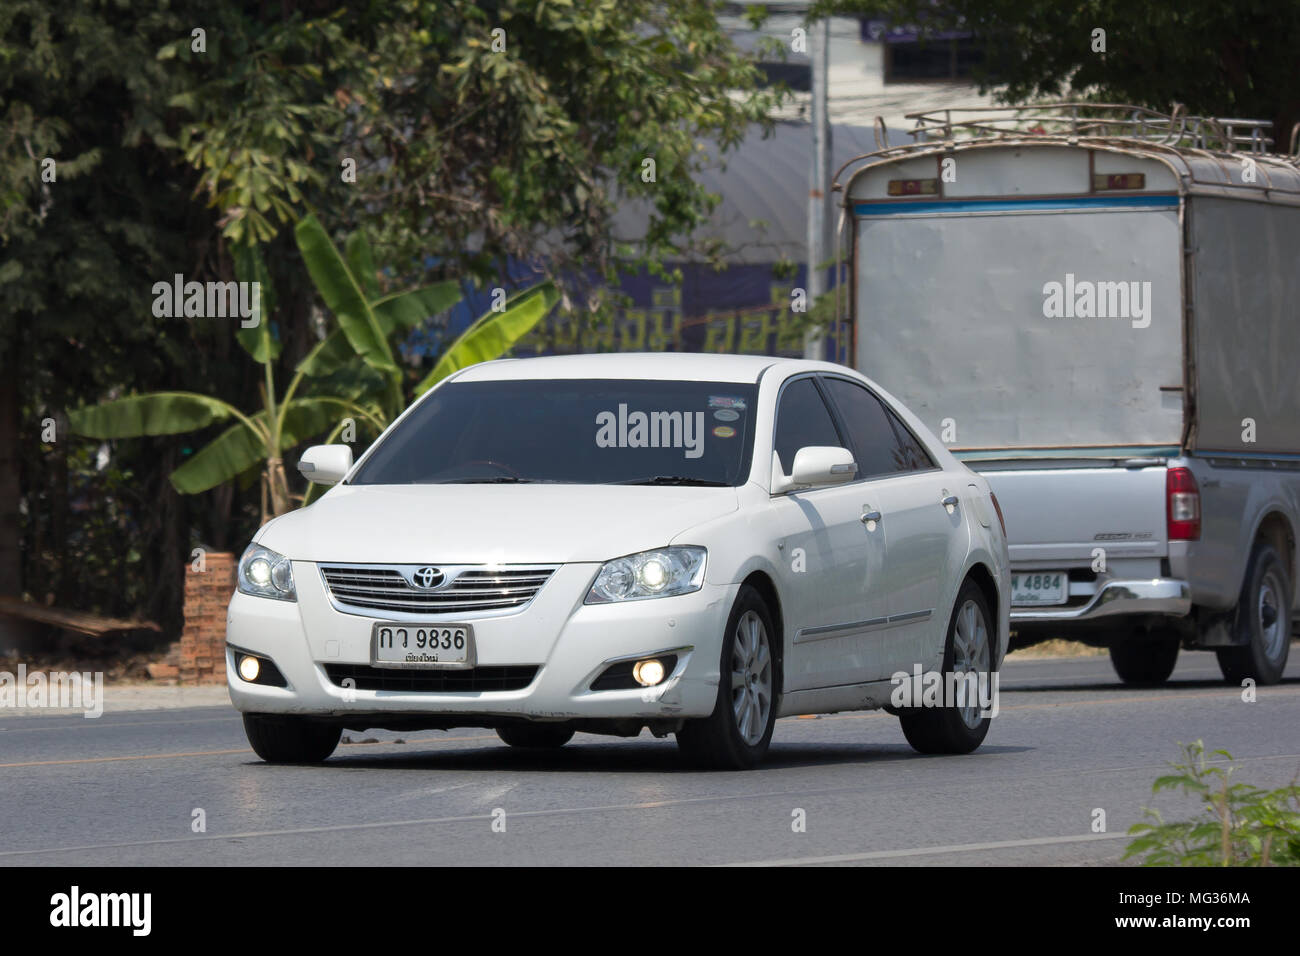 all new camry 2018 thailand kelemahan grand veloz 1.5 chiang mai april 3 private car toyota on road no 1001 8 km from chiangmai business area